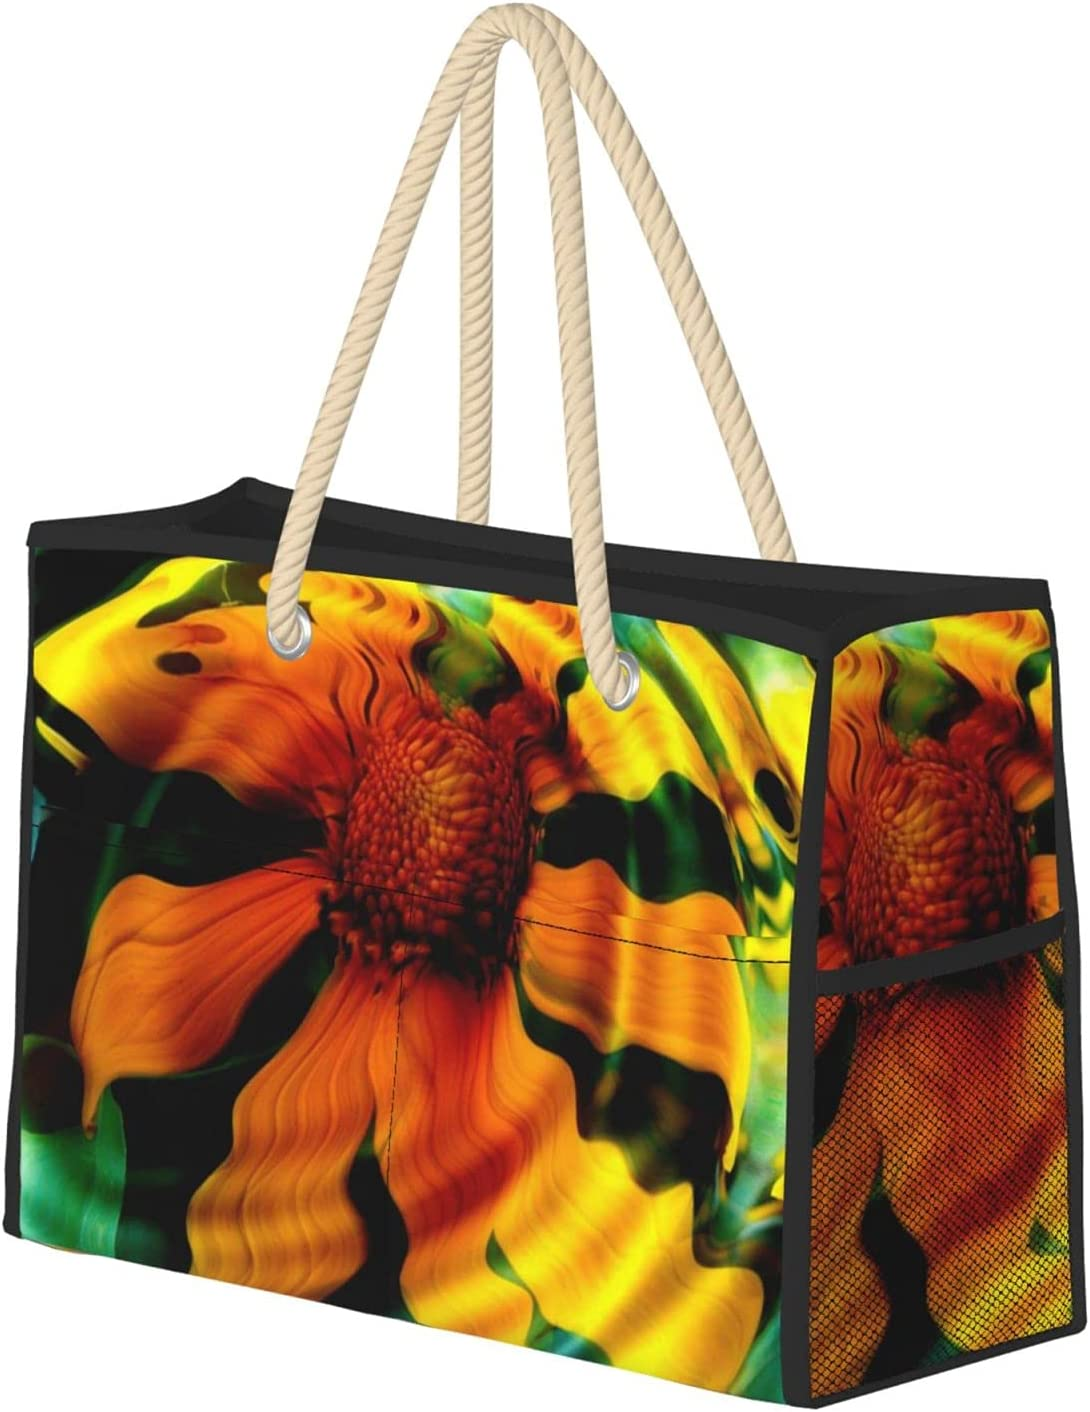 Sunflower In Water Beach Bag Super sale Now free shipping Zipper Tote Wit Sandproof